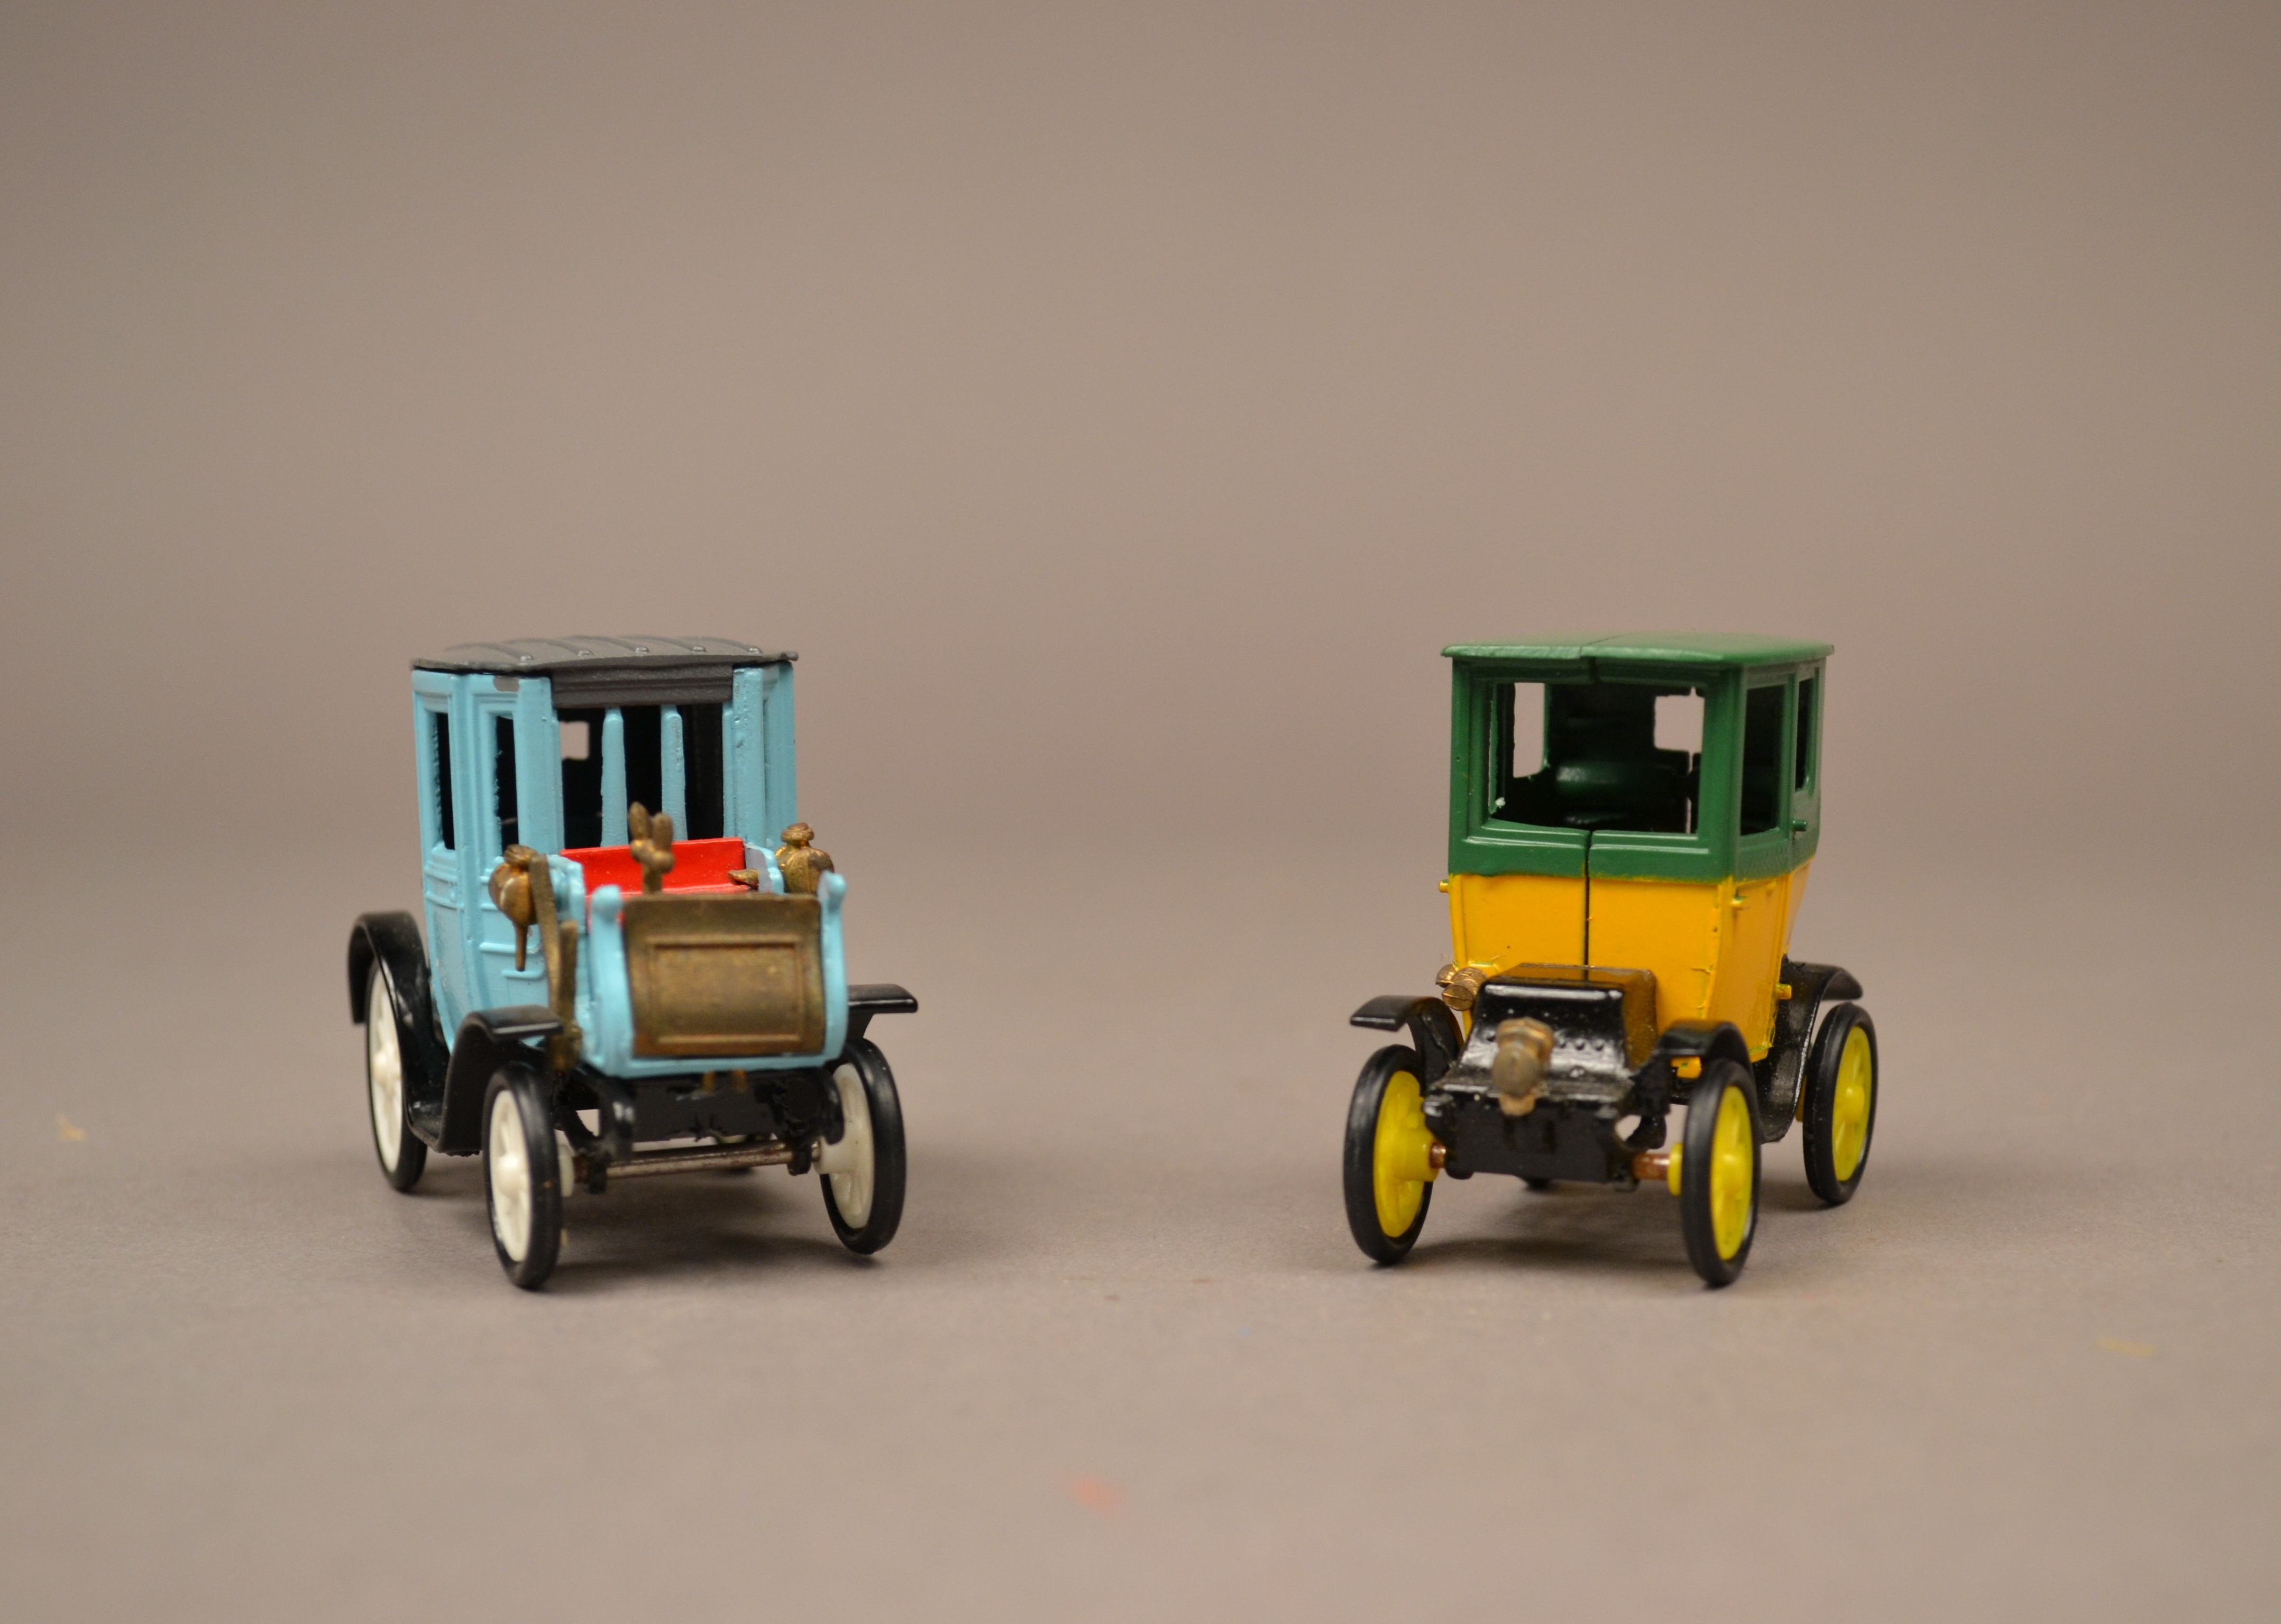 Toy cars from the Victorian Play collection (image from The Boston Children's Museum)